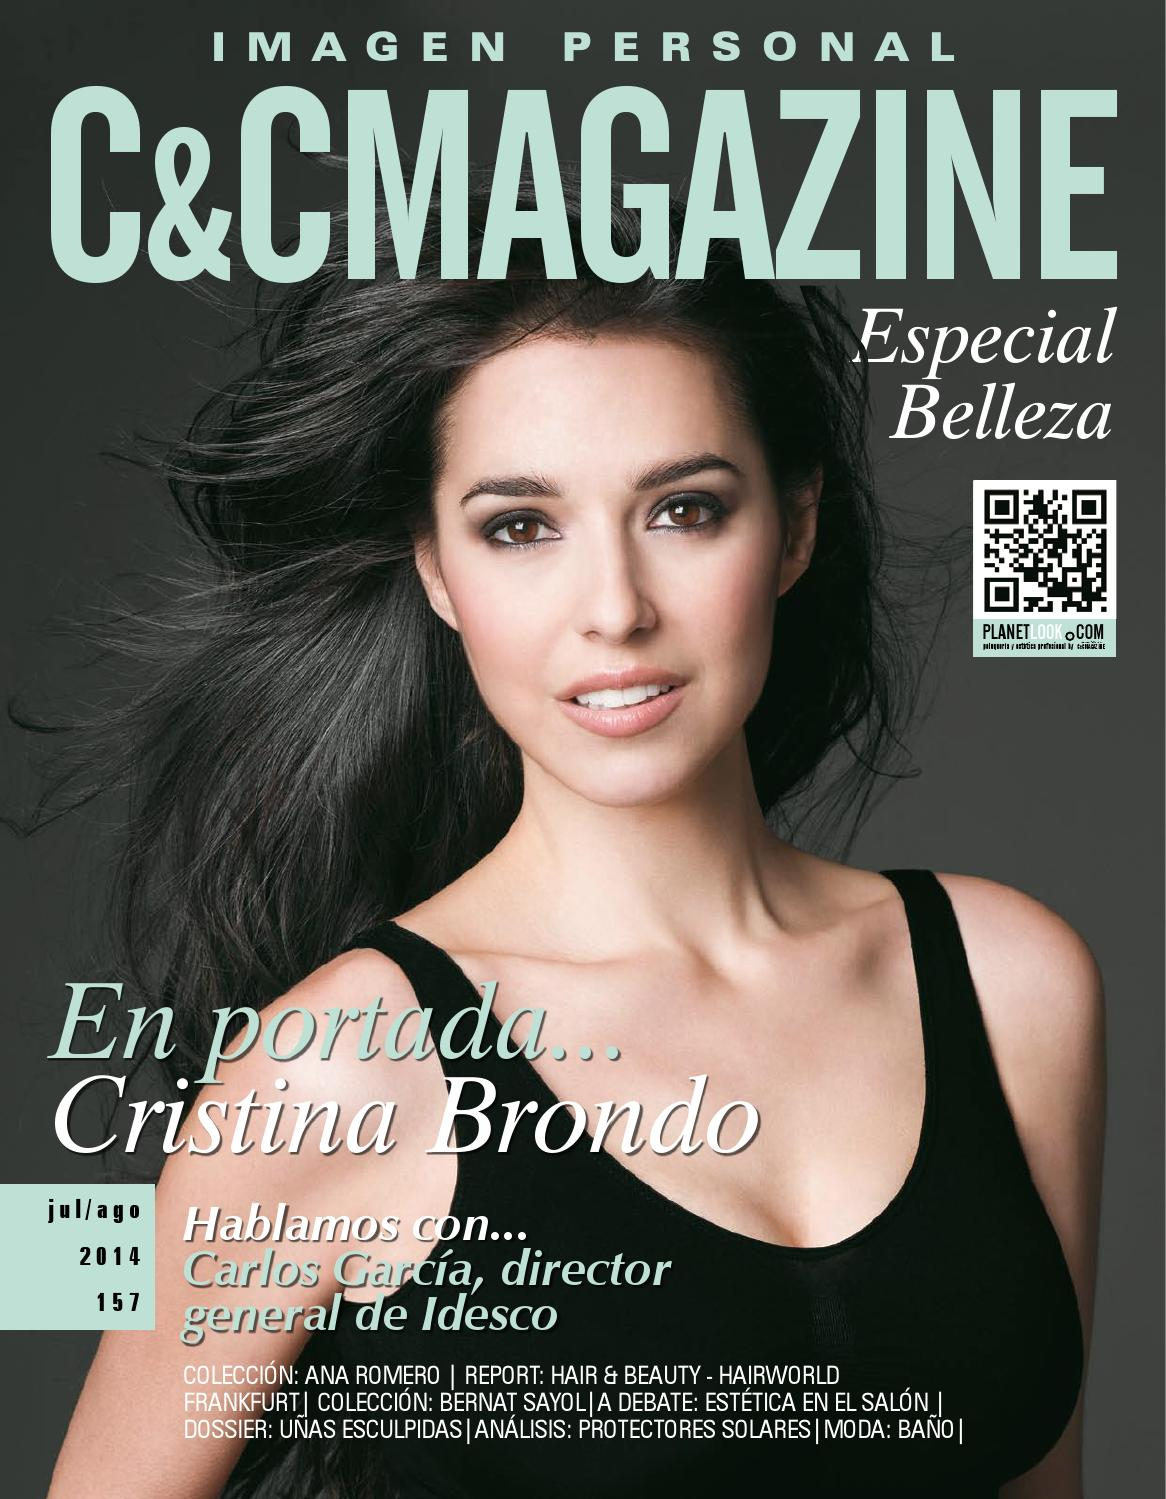 157ccmagazine by C C Magazine - issuu 279f39719d4e